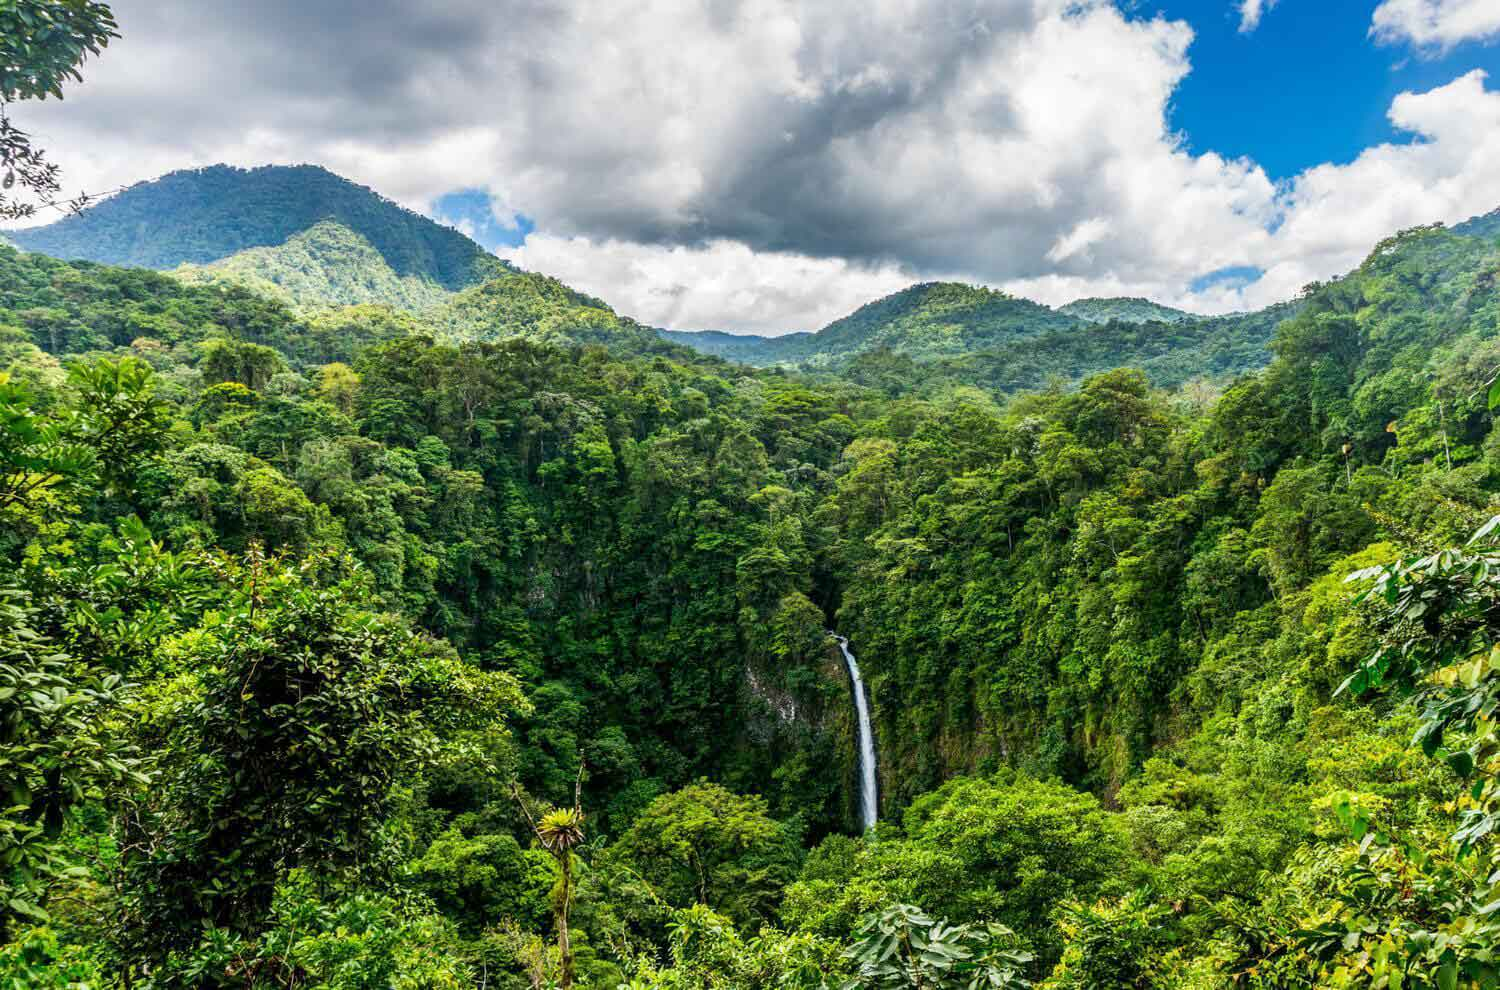 Costa Rica Doubled Its Forest Cover In Just 30 Years!